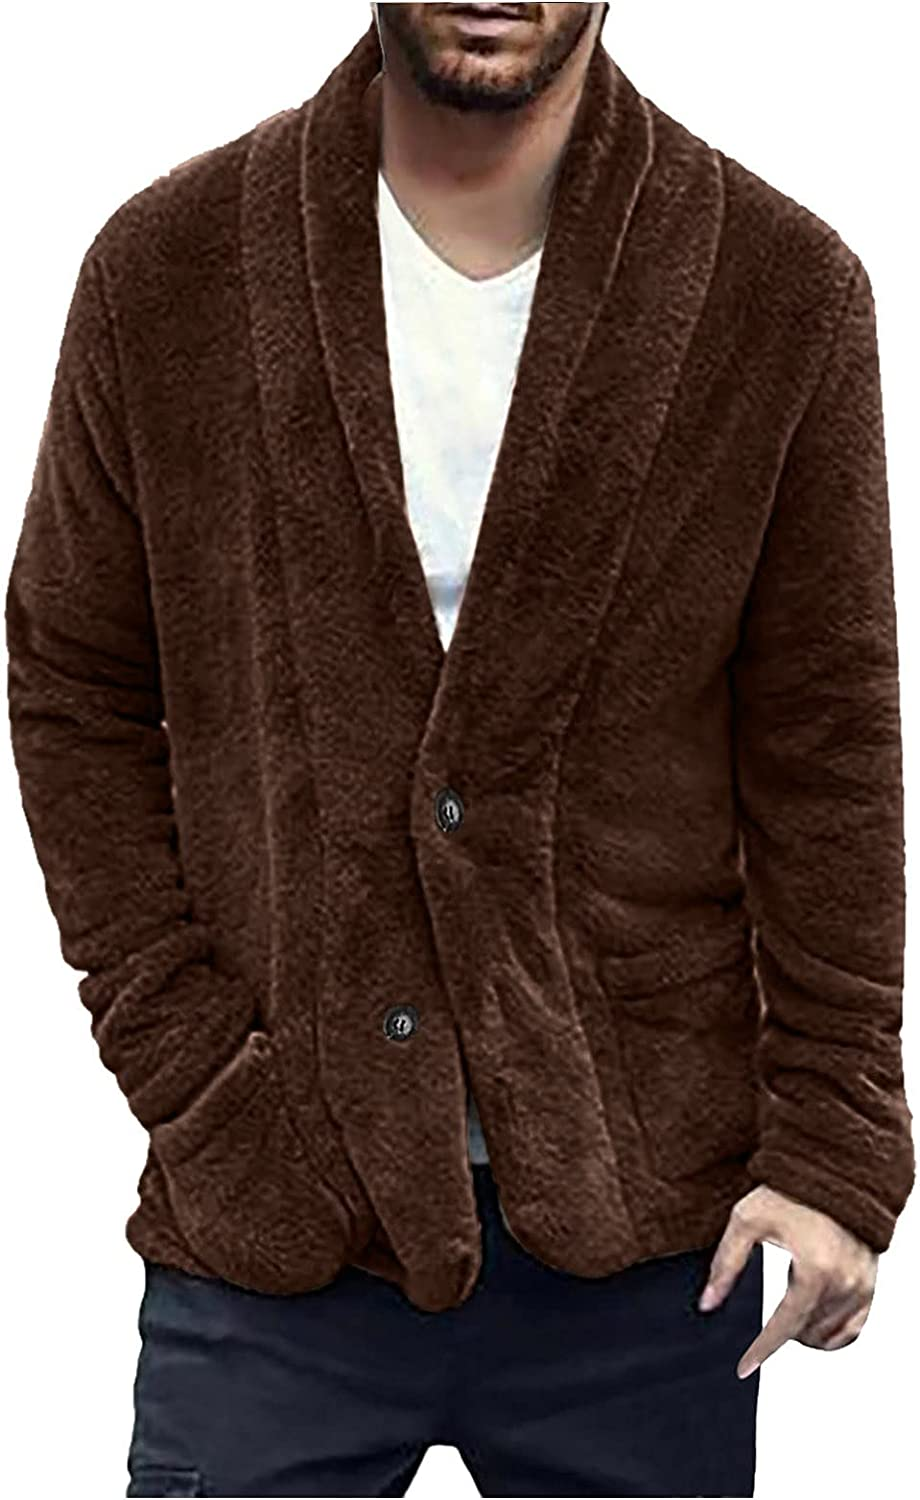 UBST Fleece Cardigans for Mens, Fall Double-sided Fluffy Single Breasted Button Casual Fuzzy Outerwear with Pockets